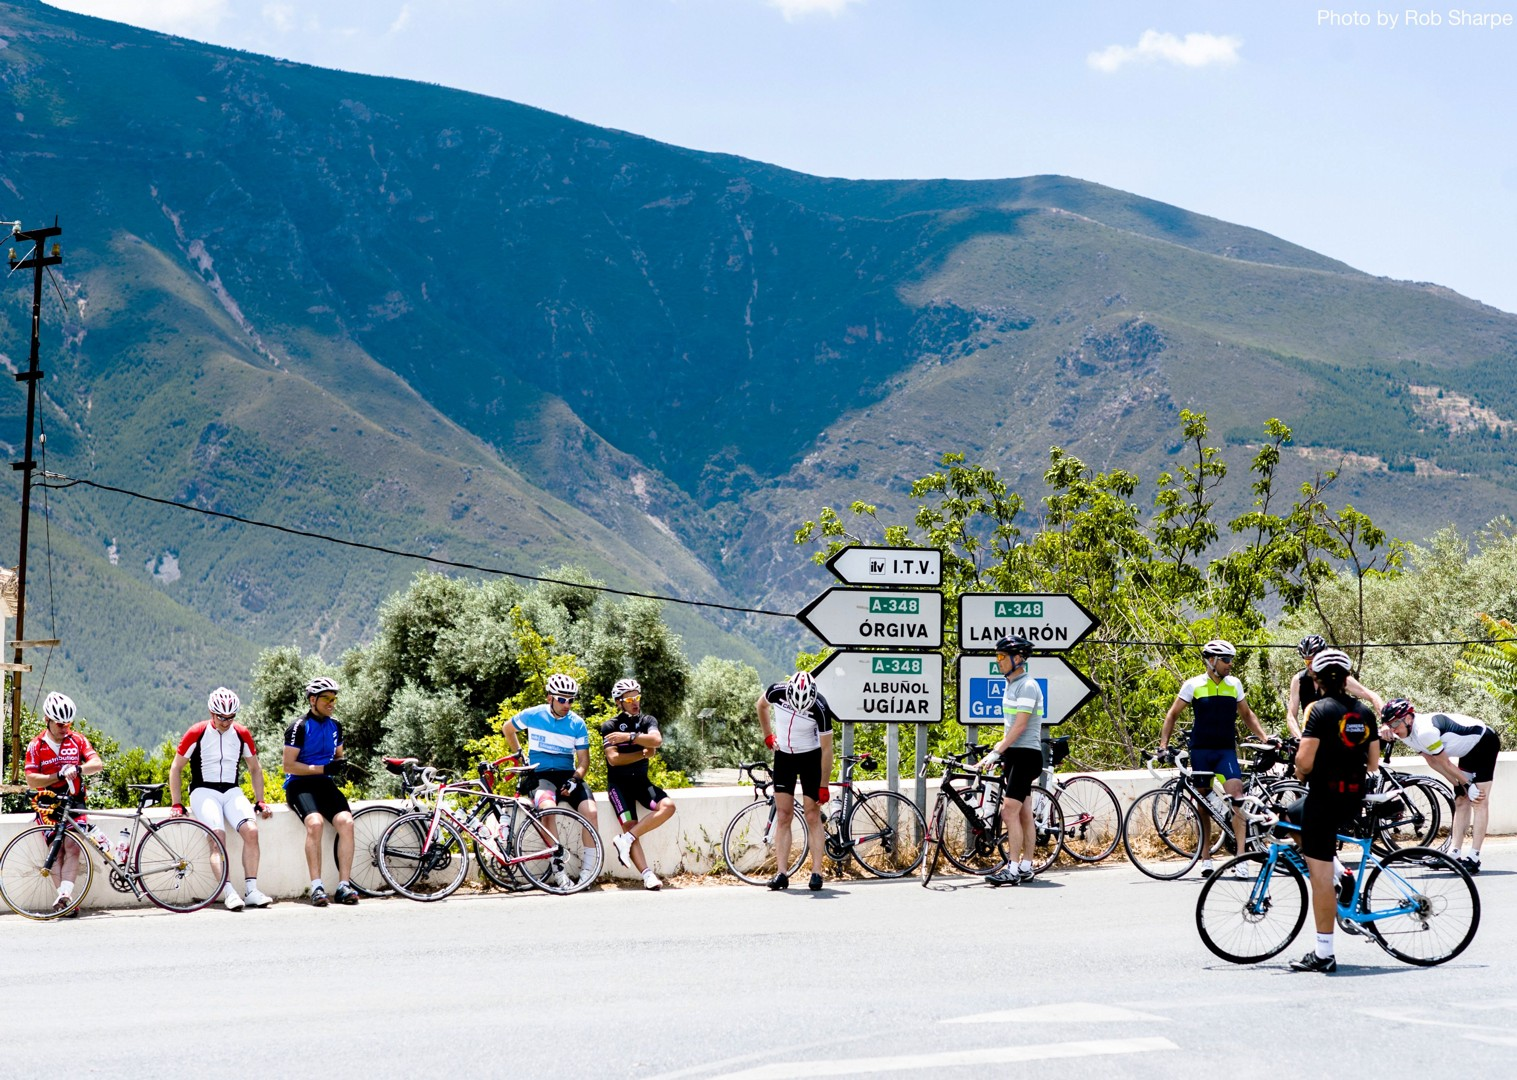 self-guided-road-cycling-holiday-in-spain-los-pueblos-blancos-andalucia-region.jpg - Southern Spain - Andalucia - Los Pueblos Blancos - Self-Guided Road Cycling Holiday - Road Cycling